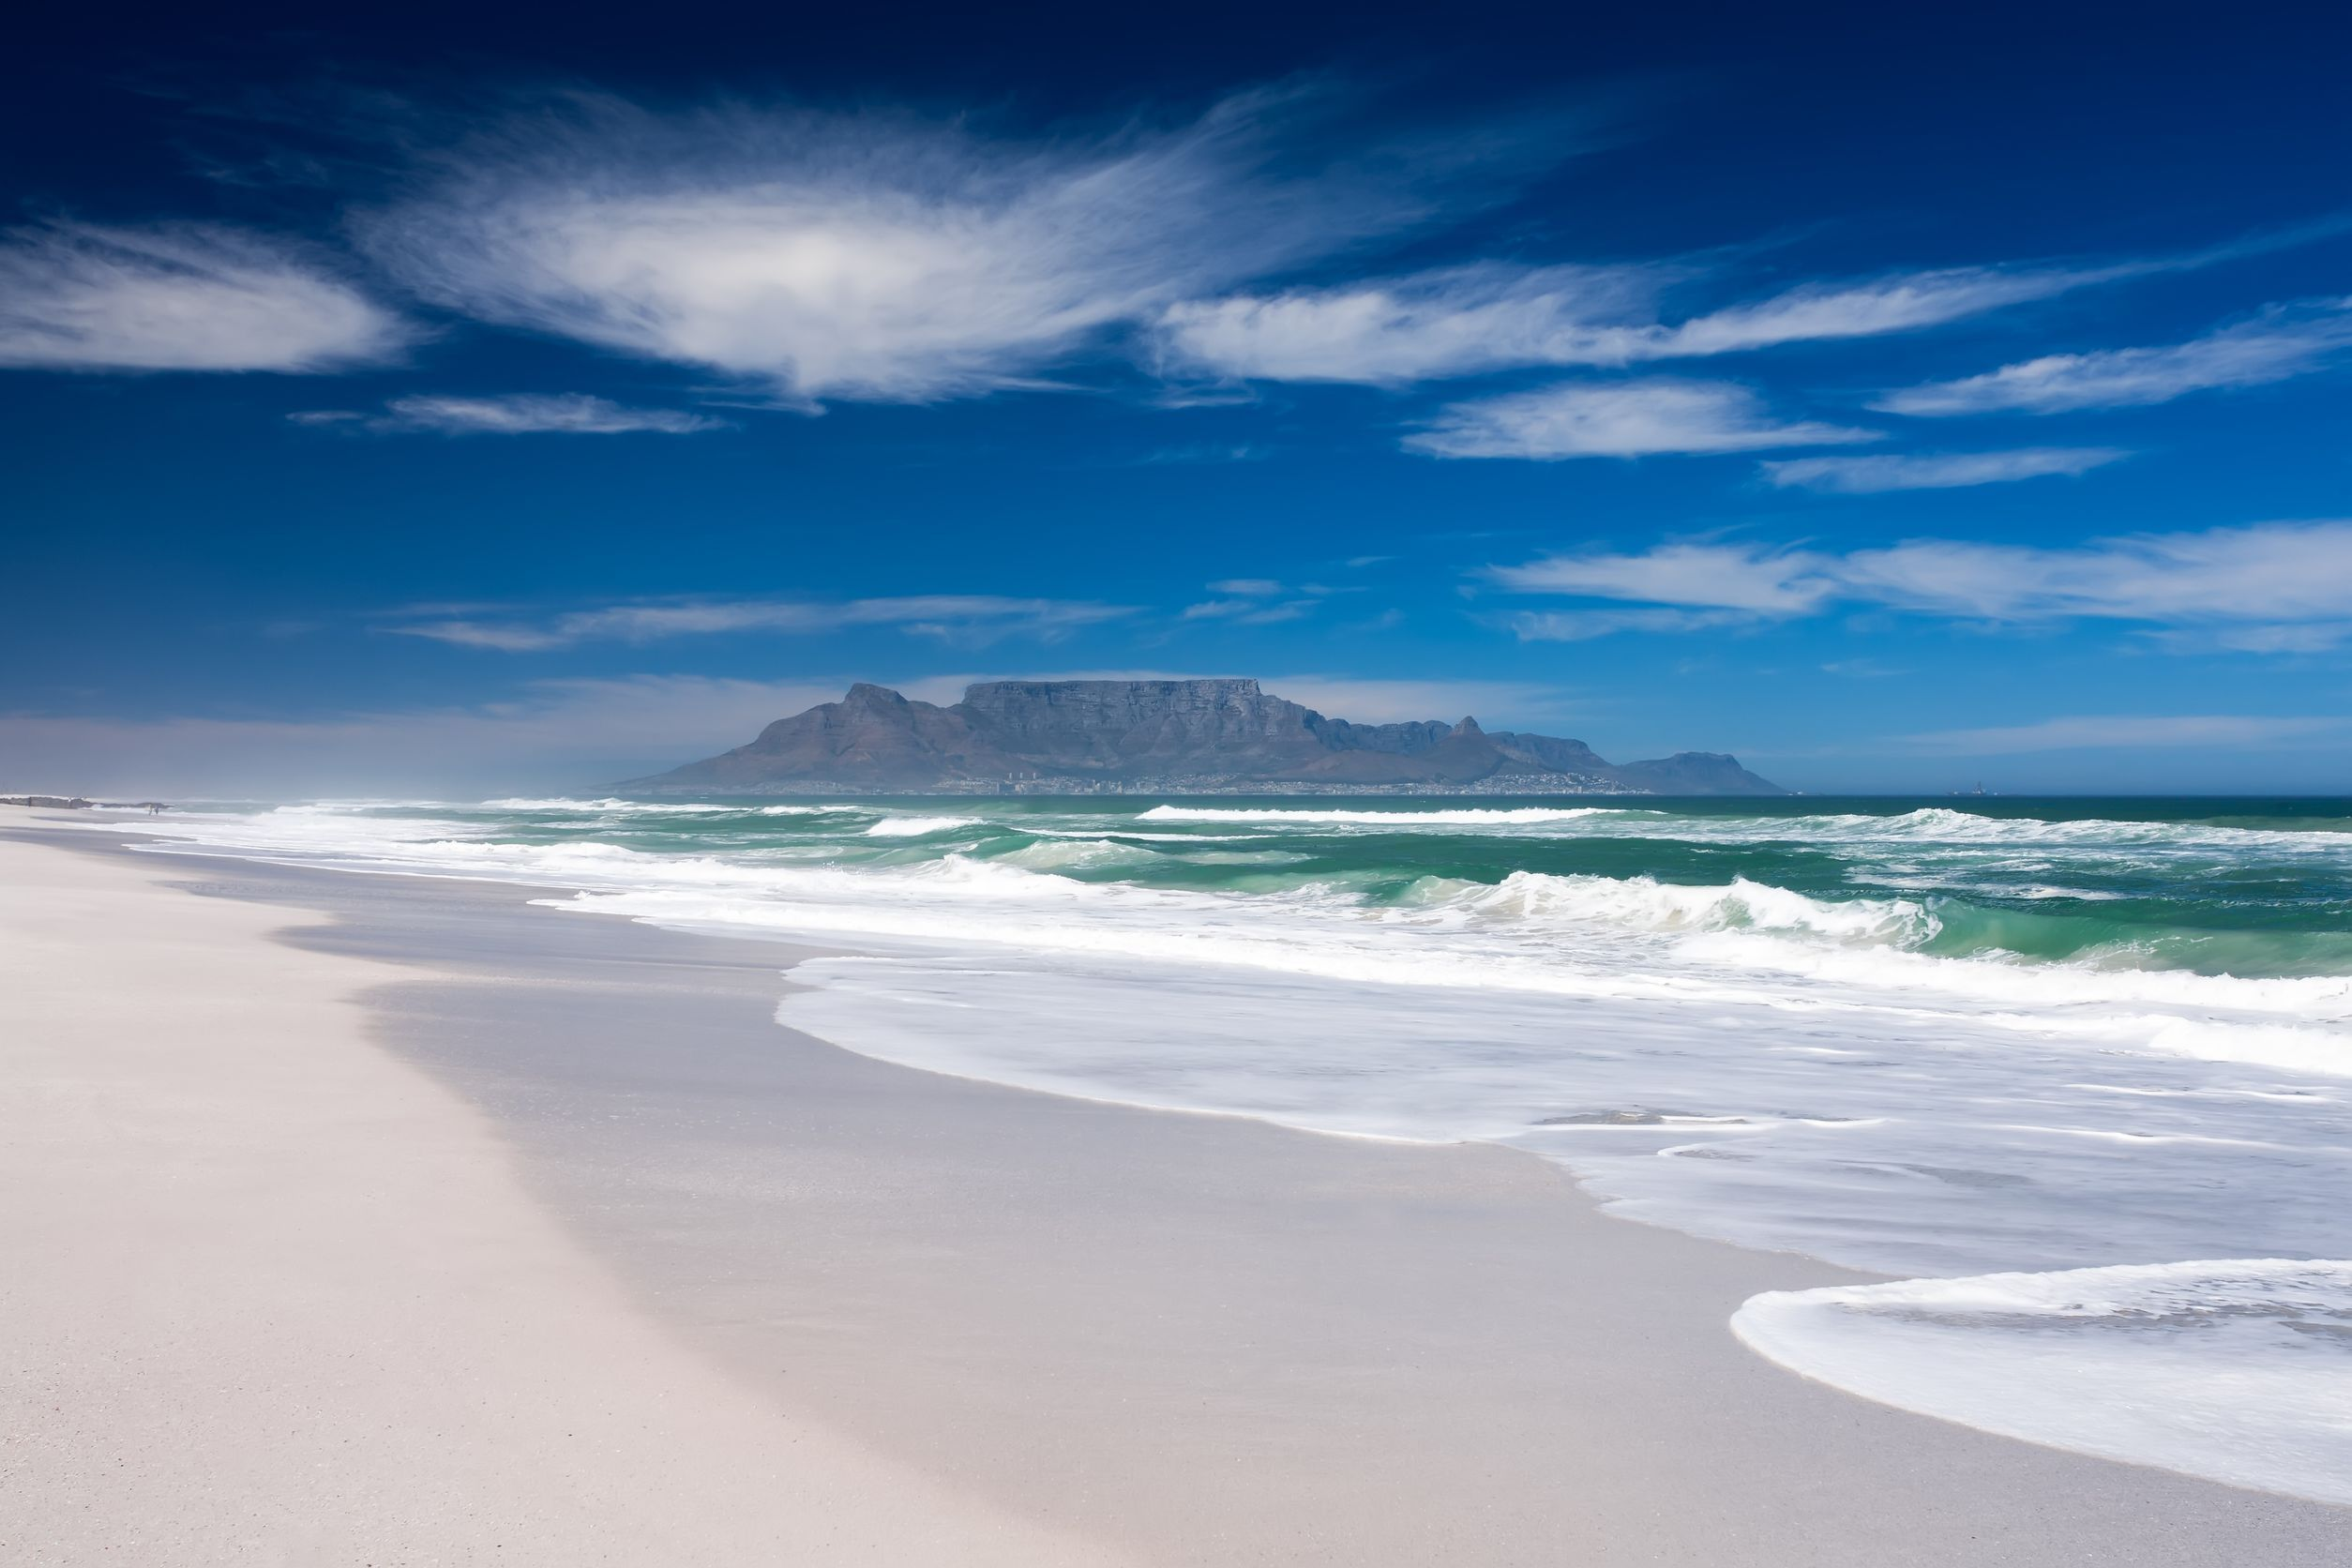 beach-view-of-table-mountain